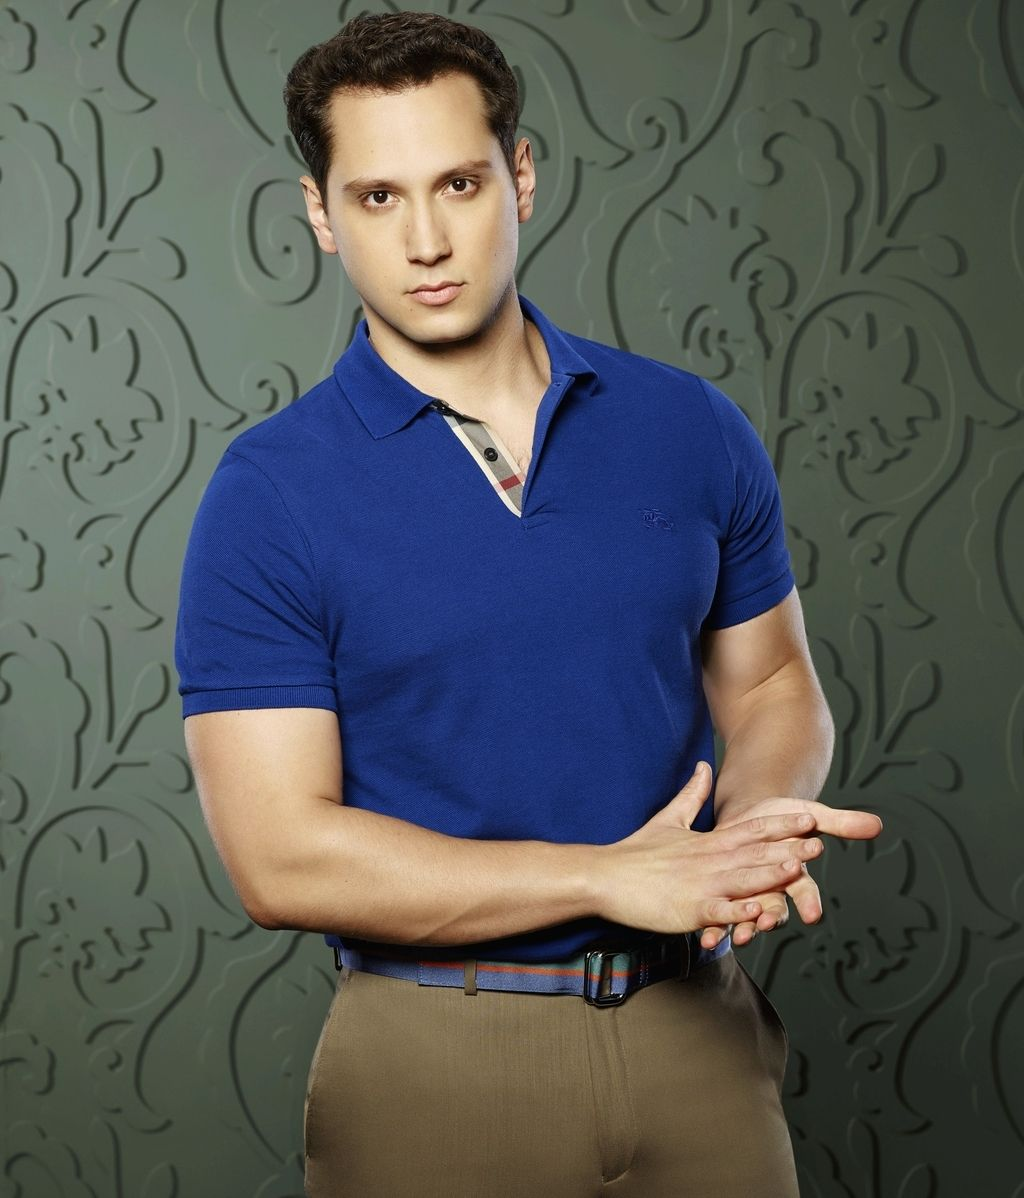 Matt McGorry es Asher Millstone, el sabelotodo de la universidad integrante de la exclusiva Ivy League